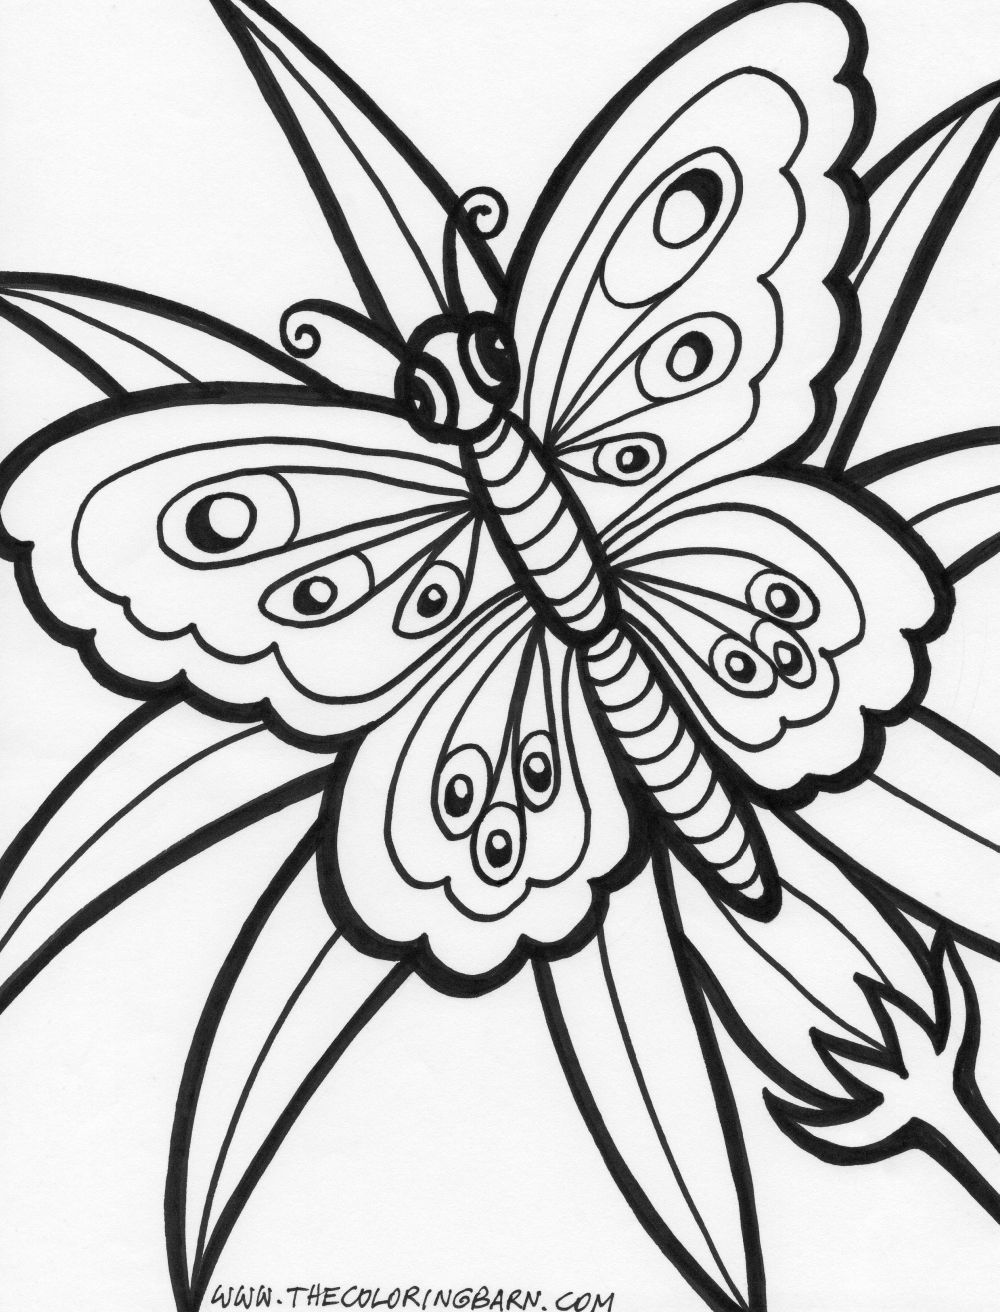 Kleurplaten Vlinder Kleurplaten Kleurplaat Nl Butterfly Coloring Page Animal Coloring Pages Printable Flower Coloring Pages